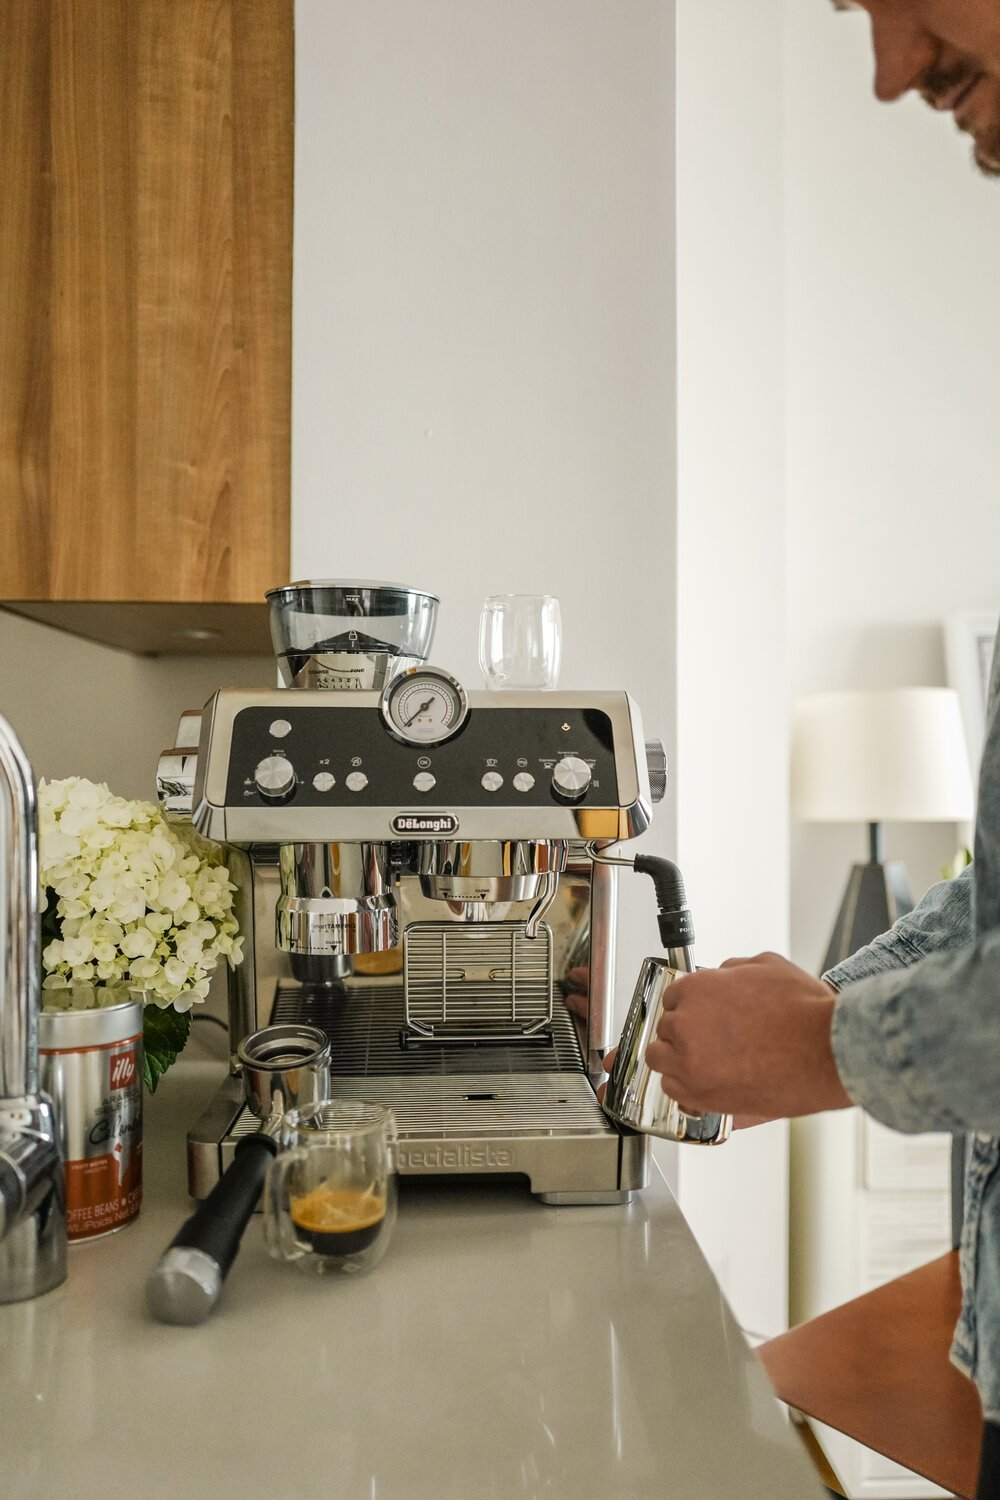 Alex is obsessed with his new coffee machine! It honestly makes the best coffee ever - no more $5 lattes for us!